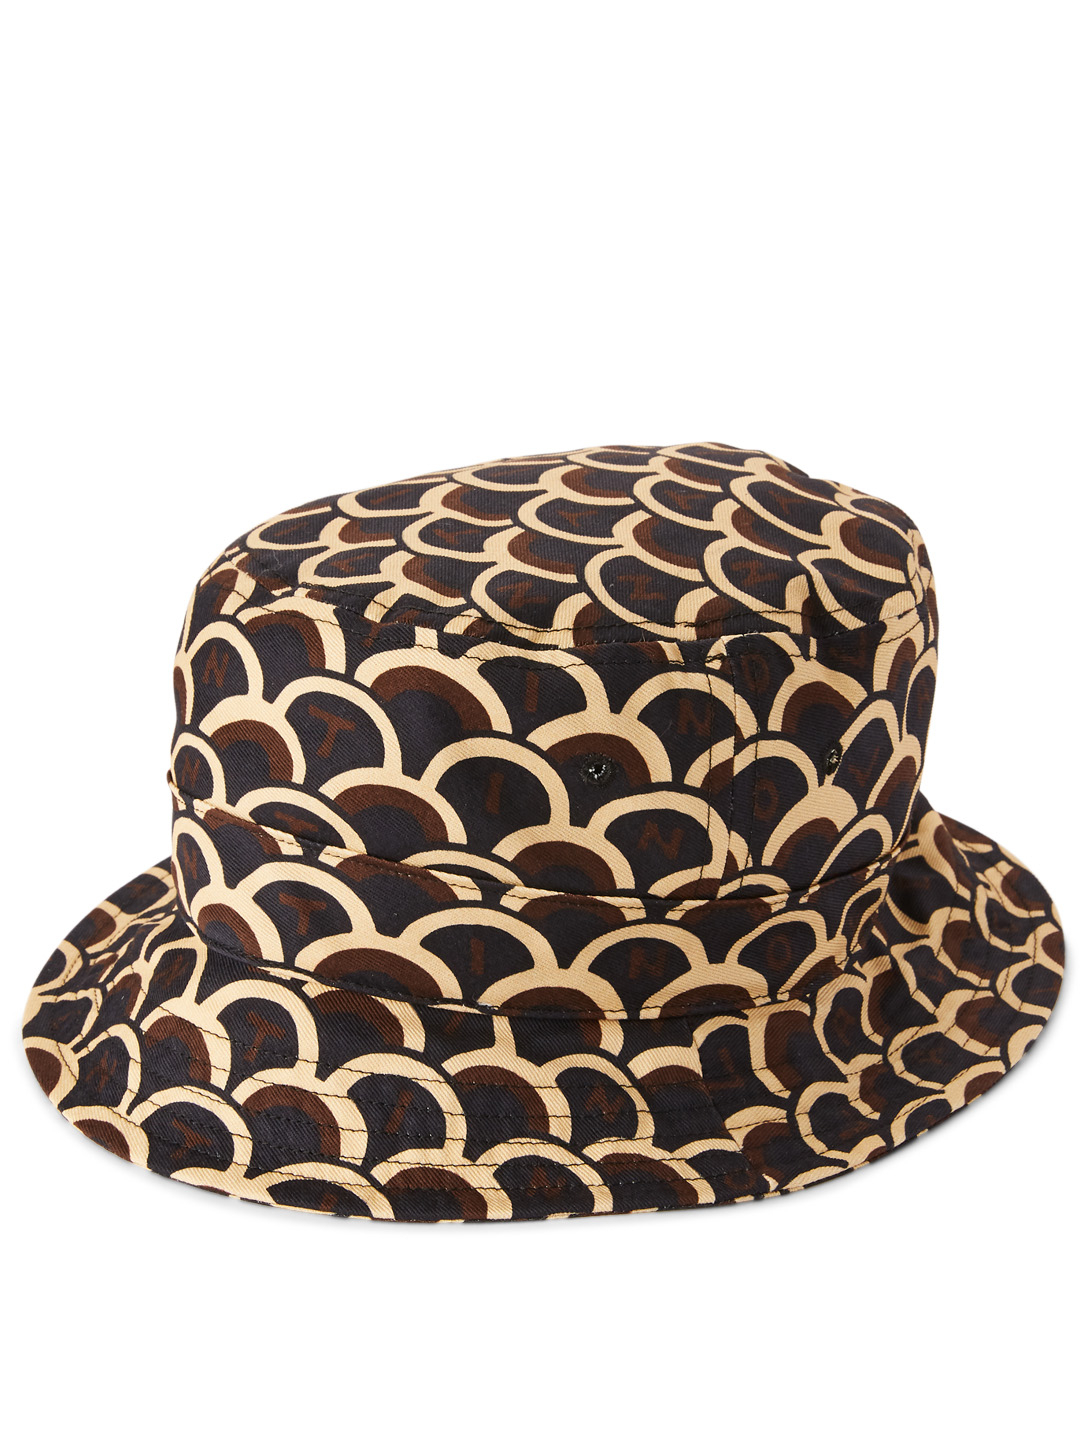 VALENTINO Bucket Hat In Logo Print Men's Multi